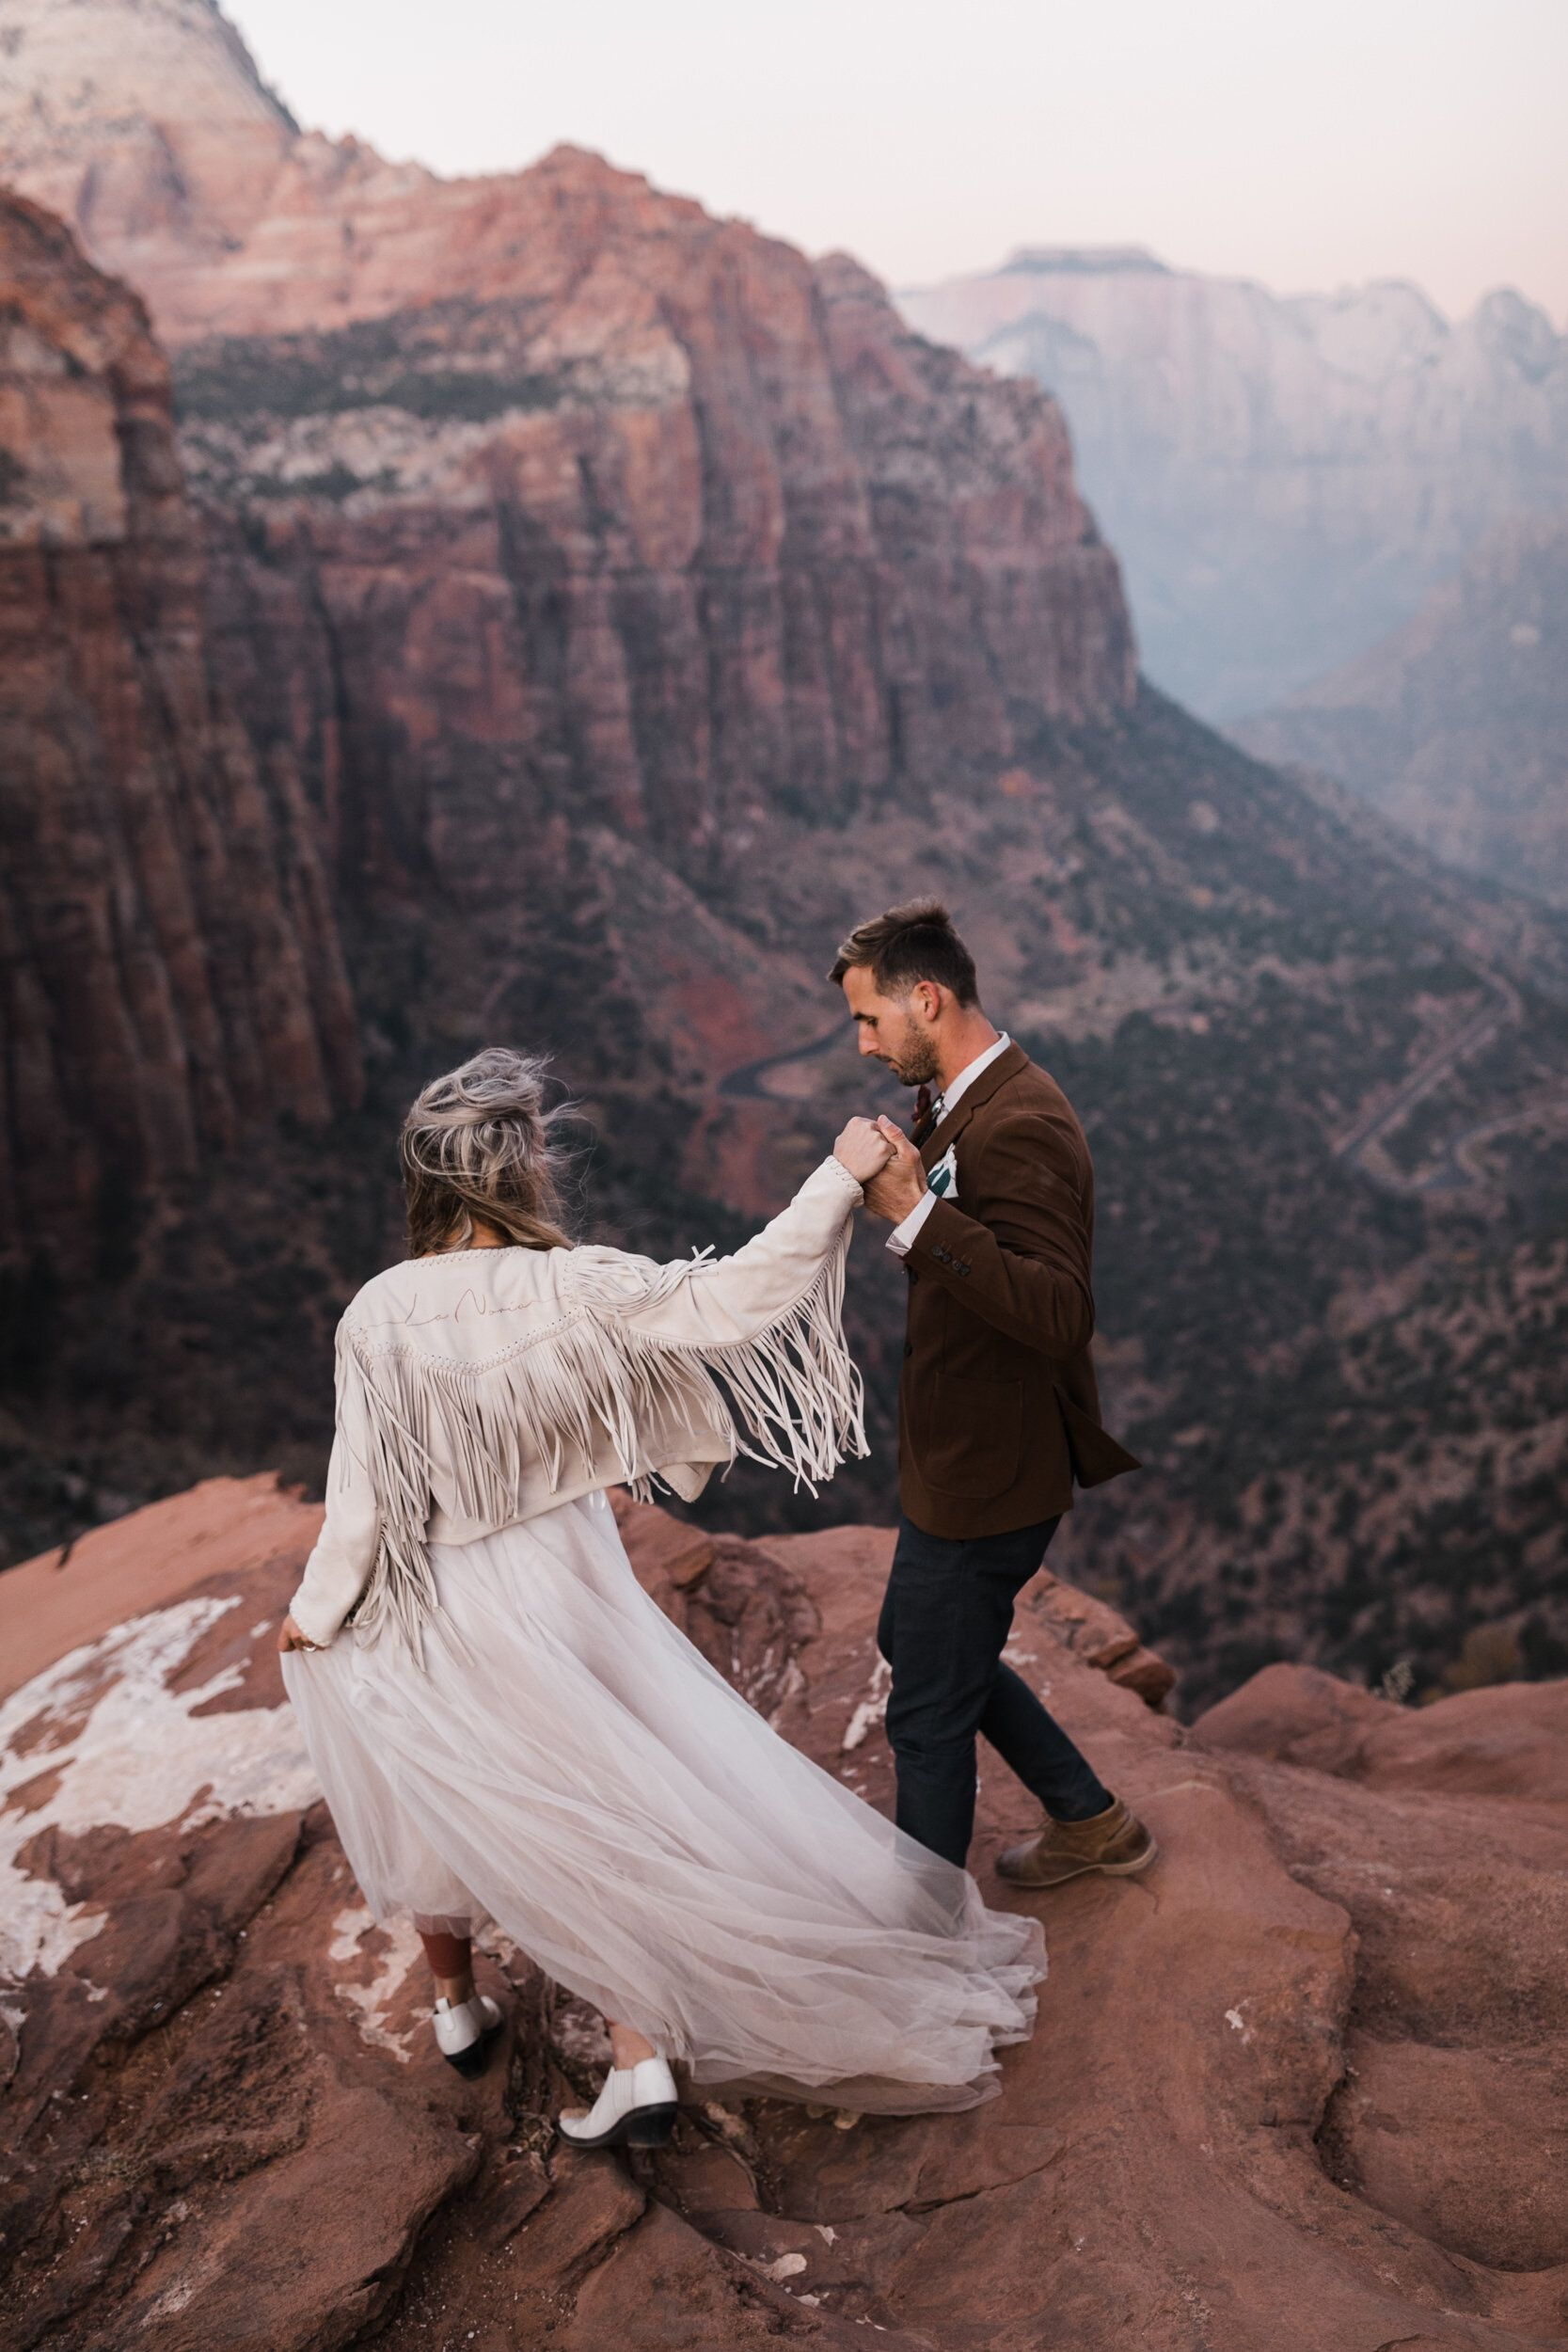 Zion National Park Wedding Under Canvas Zion And Lazalu Adventure Wedding Elopement Photographers In Moab Yosemite And Beyond The Hearnes In 2020 National Park Wedding Zion National Park Park Weddings